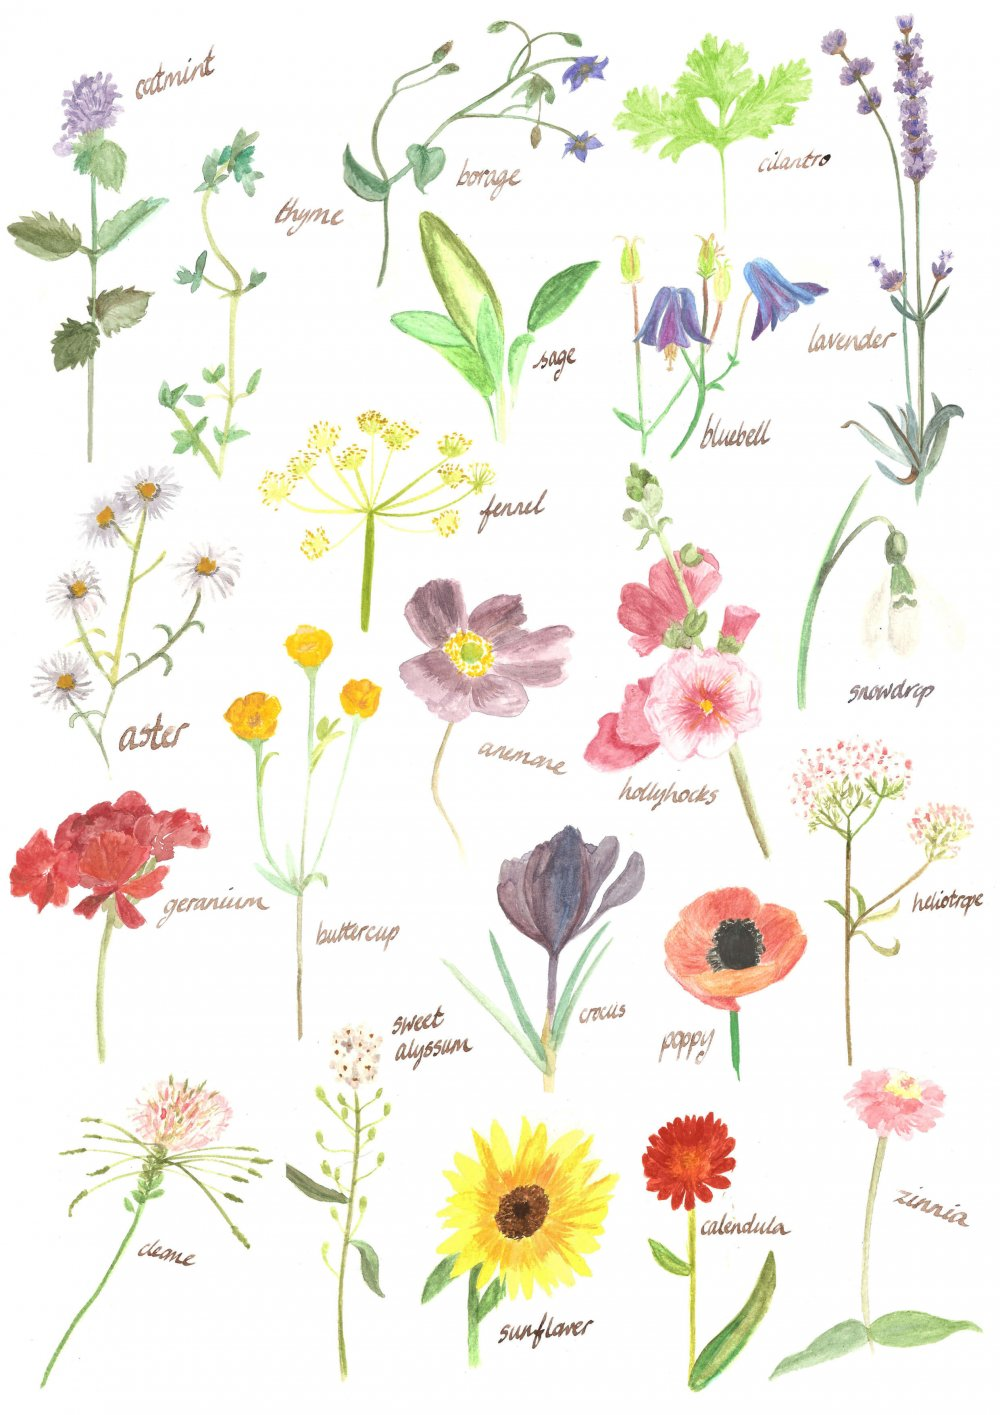 Watercolour drawings of bee friendly flowers